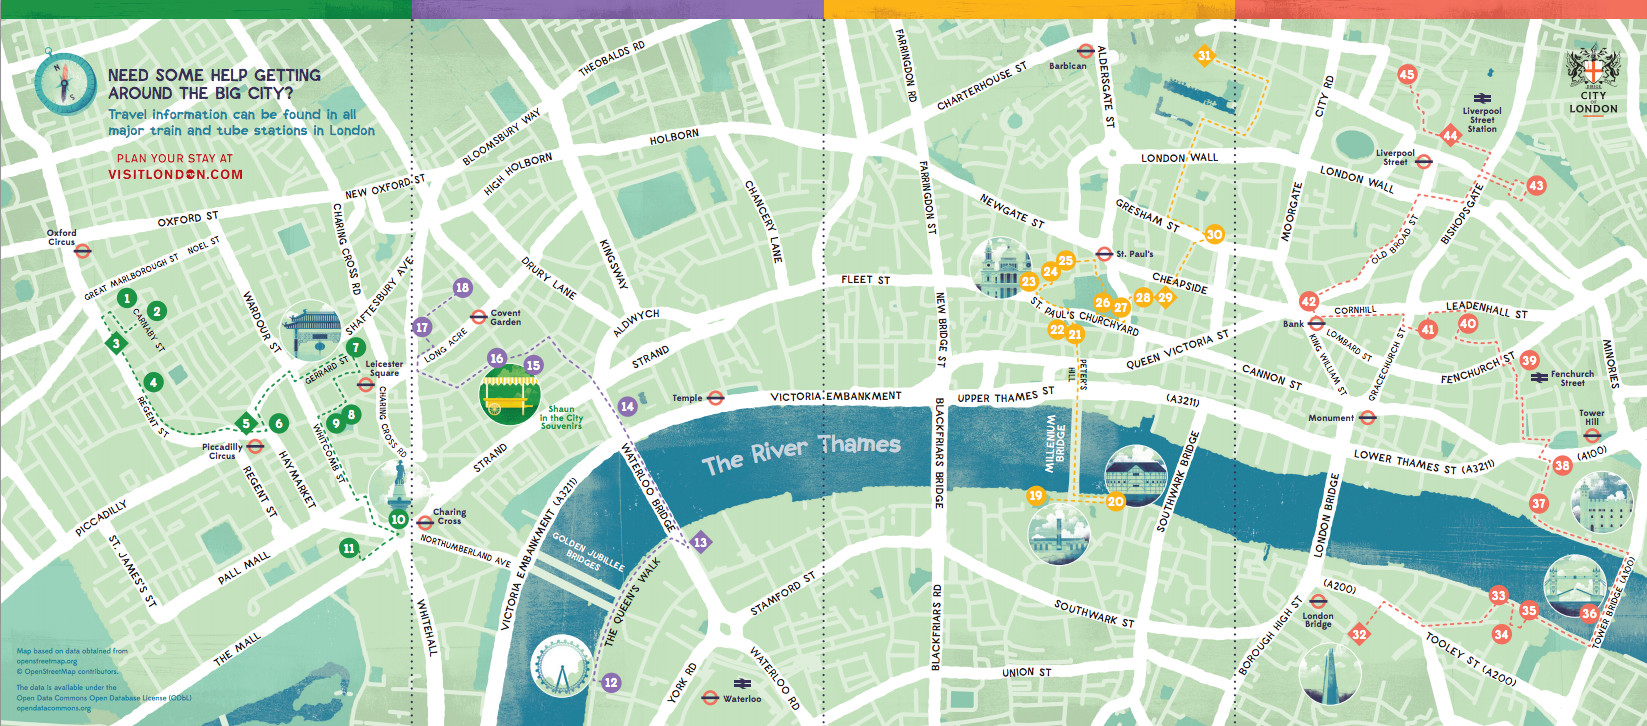 Maps Update London Tourist Map Pdf London Tourist Map - London map pdf 2015